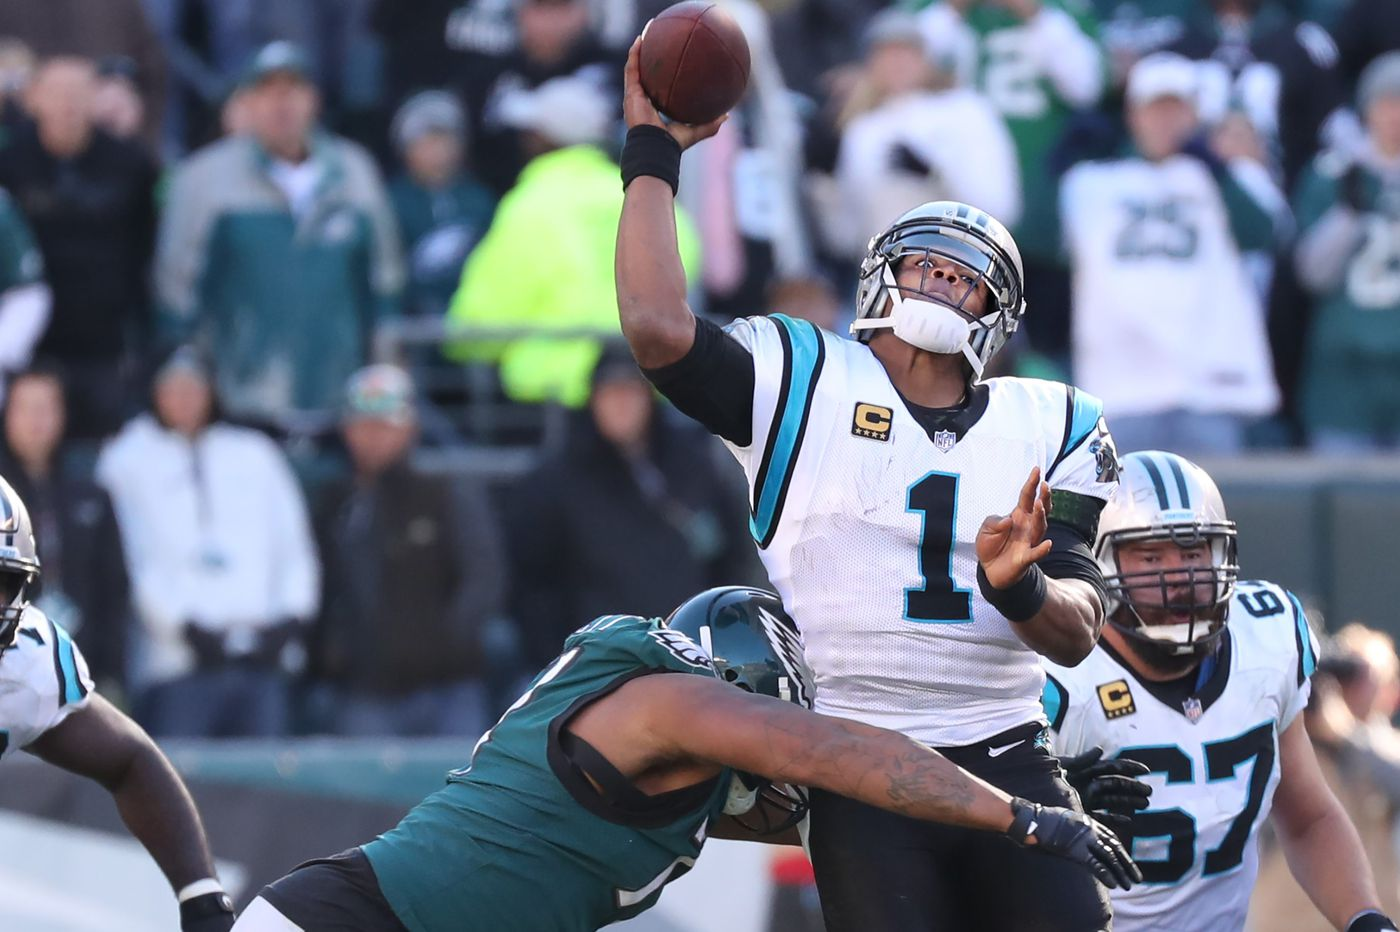 Grading the Eagles: Pass defense gets an 'F' in loss to Panthers | Paul Domowitch